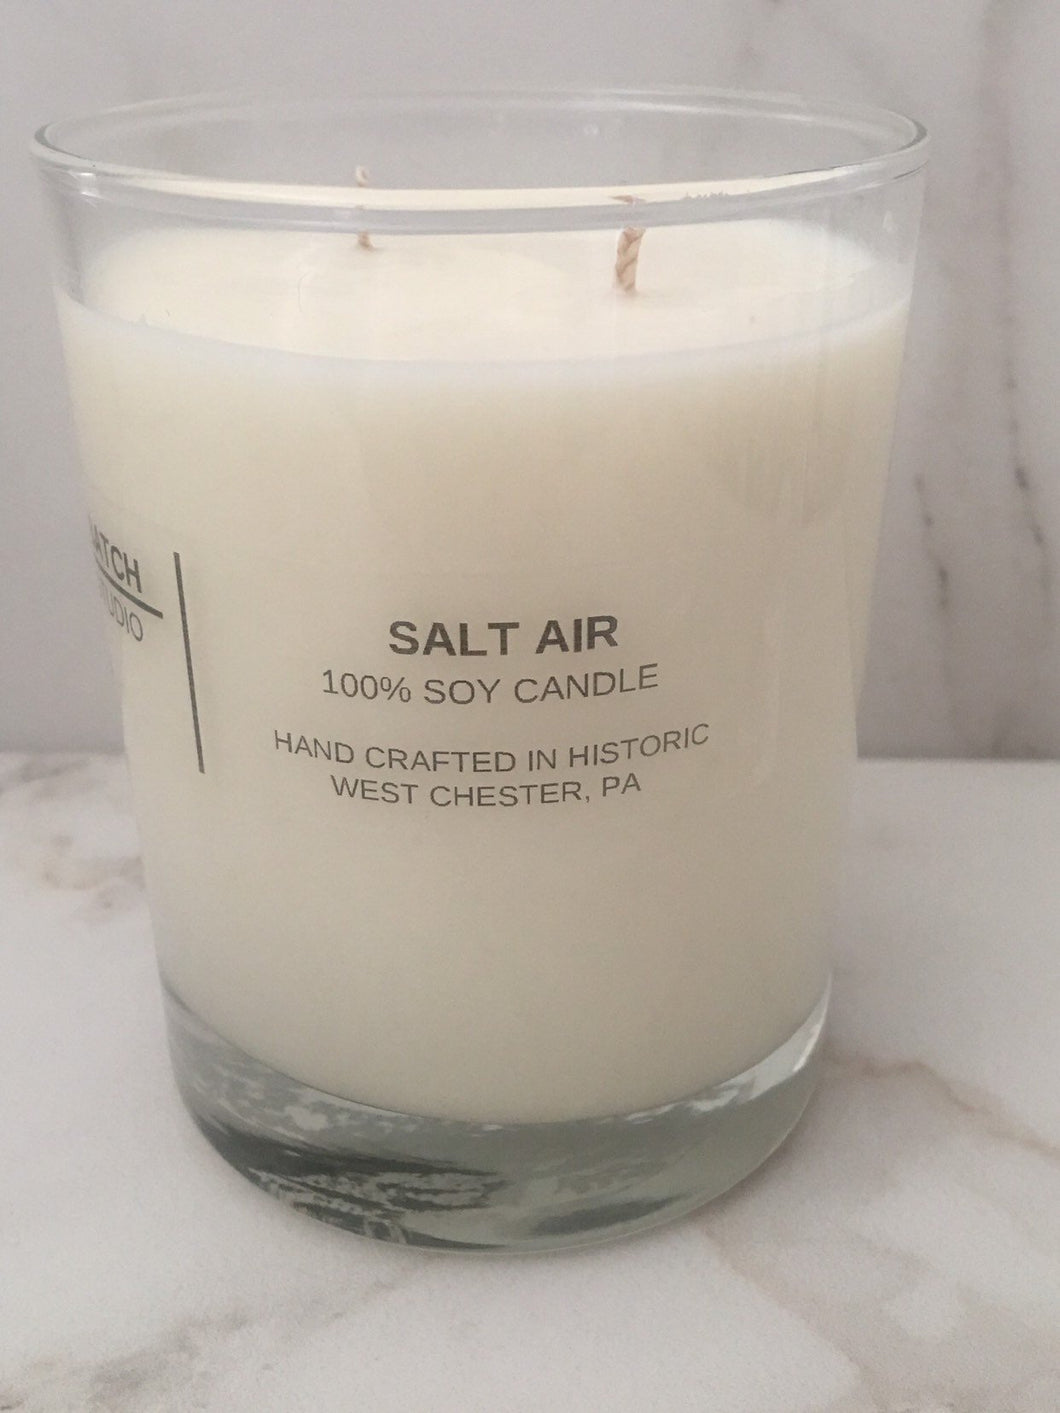 SALT AIR  100% soy wax candle, double wick, 10 oz., hand crafted in glass tumbler with fragrance and essential oils